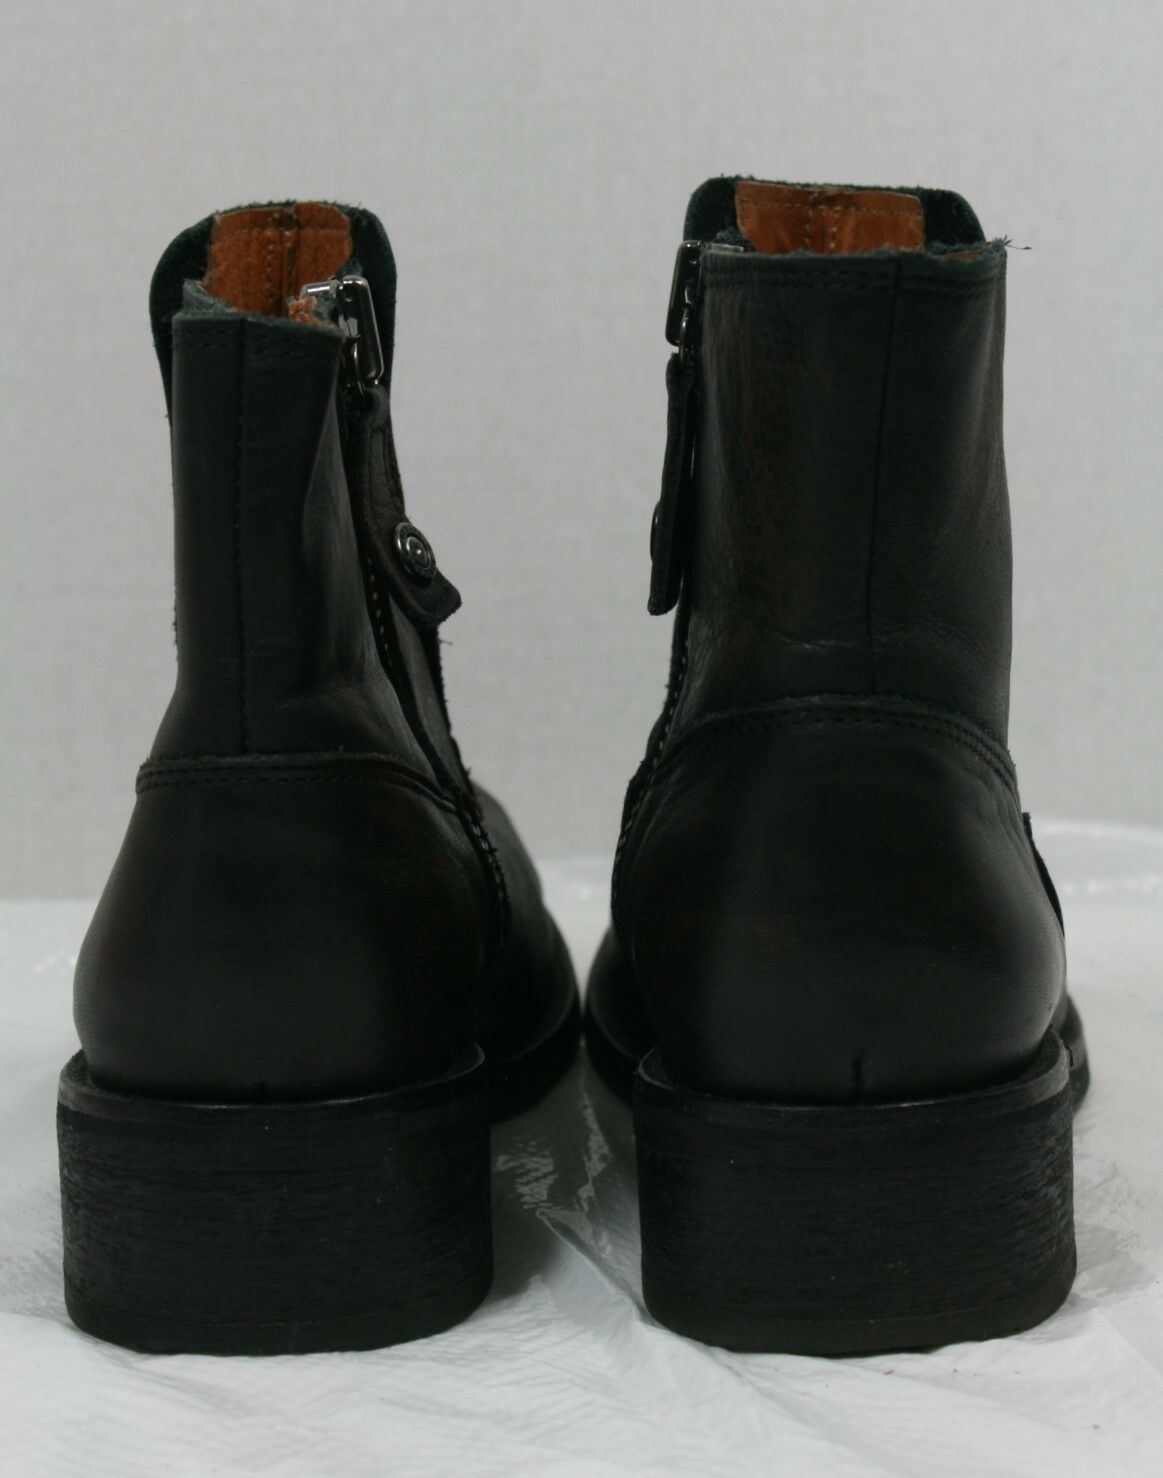 DIESEL SHOES ROXYDOO ROXYDOO SHOES BOOTS ANKLE BOOTIES DARK BROWN LEATHER 38  320 50af89